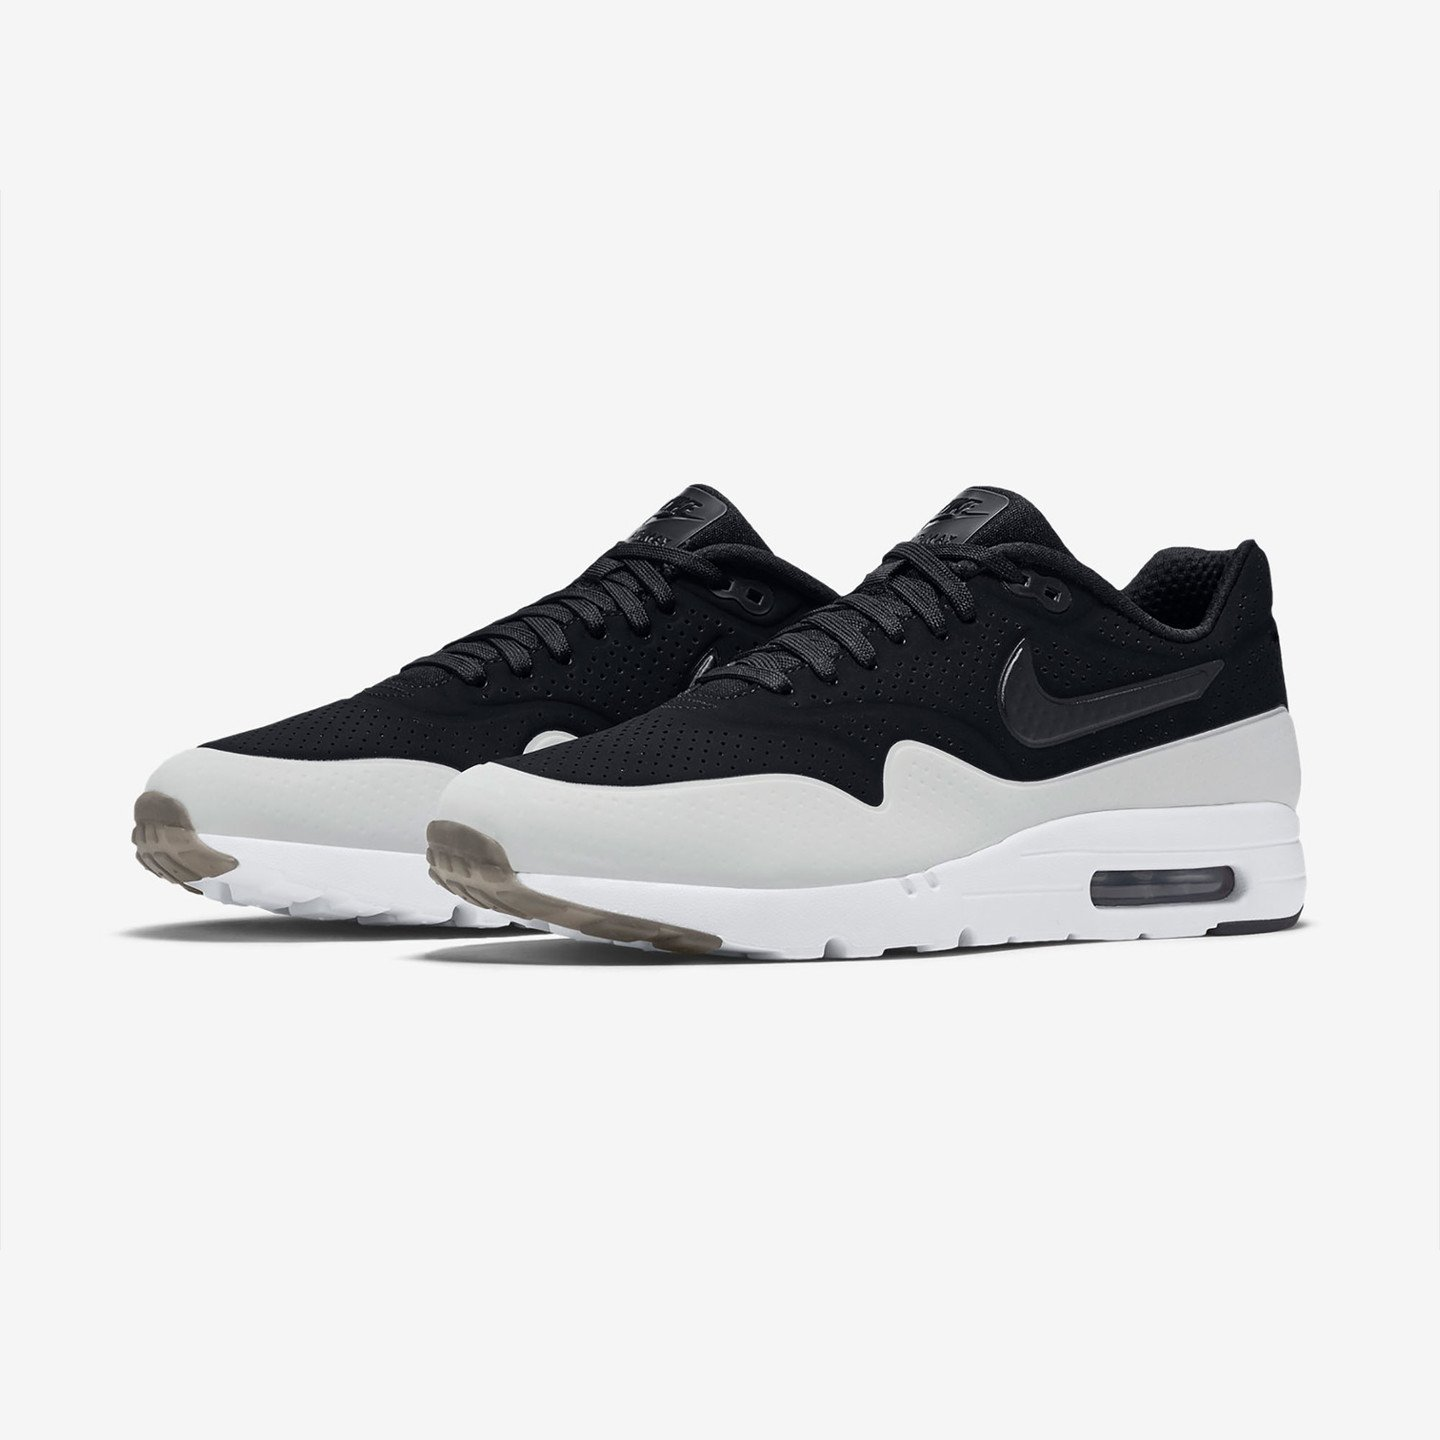 Nike Air Max 1 Ultra Moire Black / White 705297-011-44